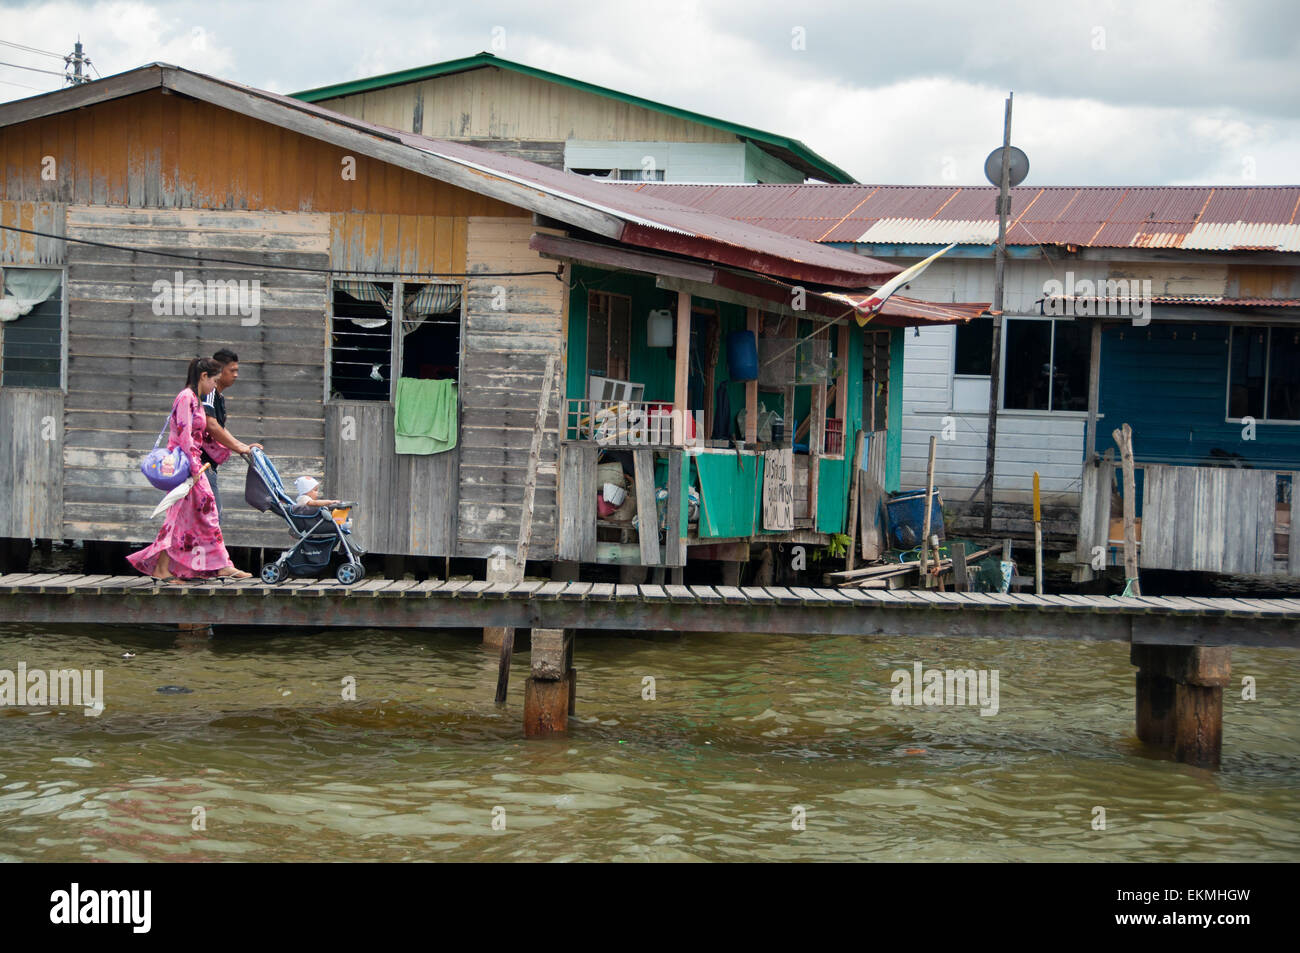 the-water-village-of-kampong-ayer-bandar-seri-begawan-brunei-EKMHGW.jpg